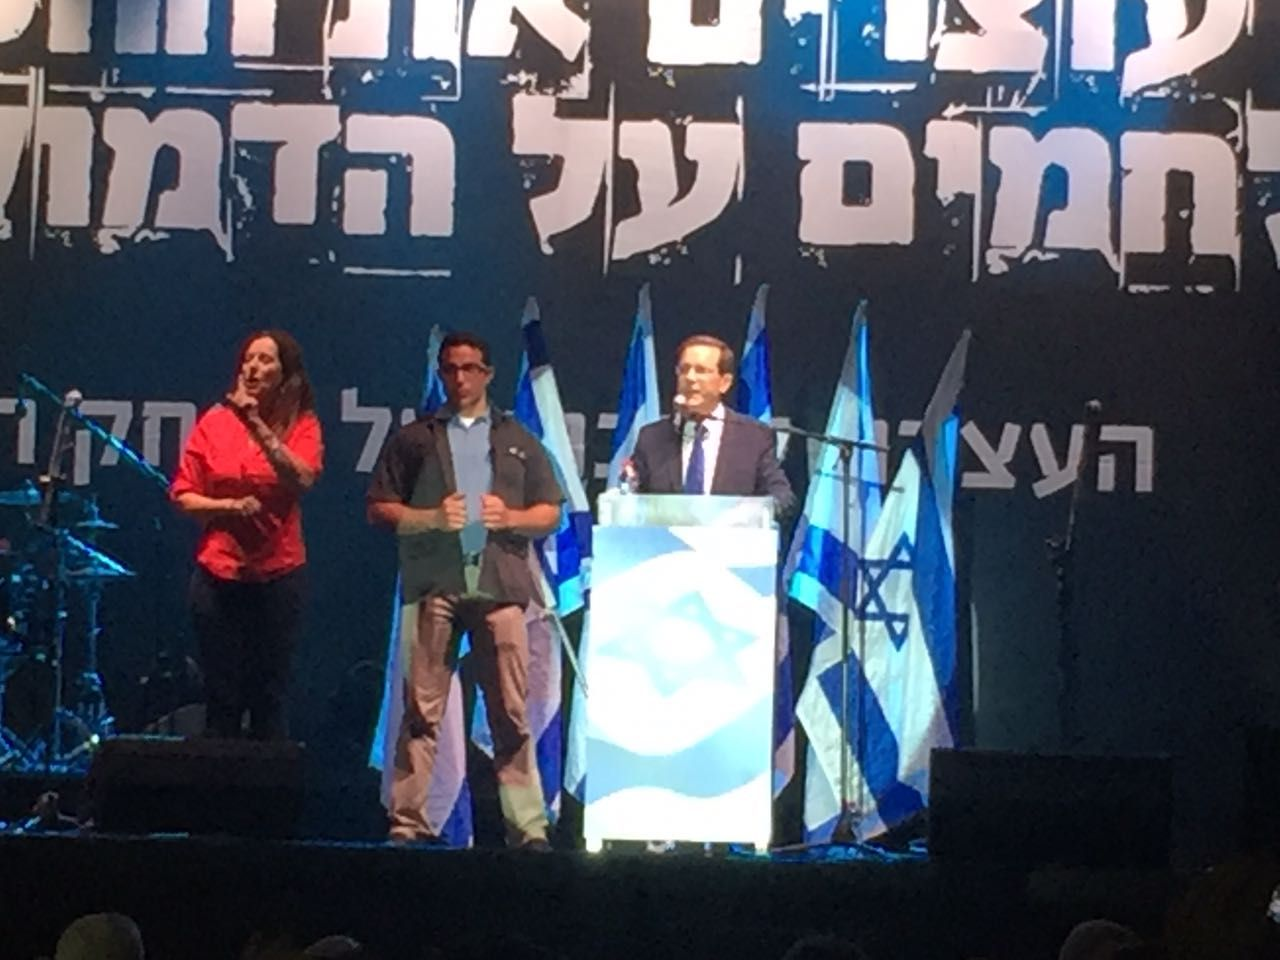 Israeli opposition chief Isaac Herzog addresses the crowd at a memorial ceremony for Yitzhak Rabin on November 5, 2016